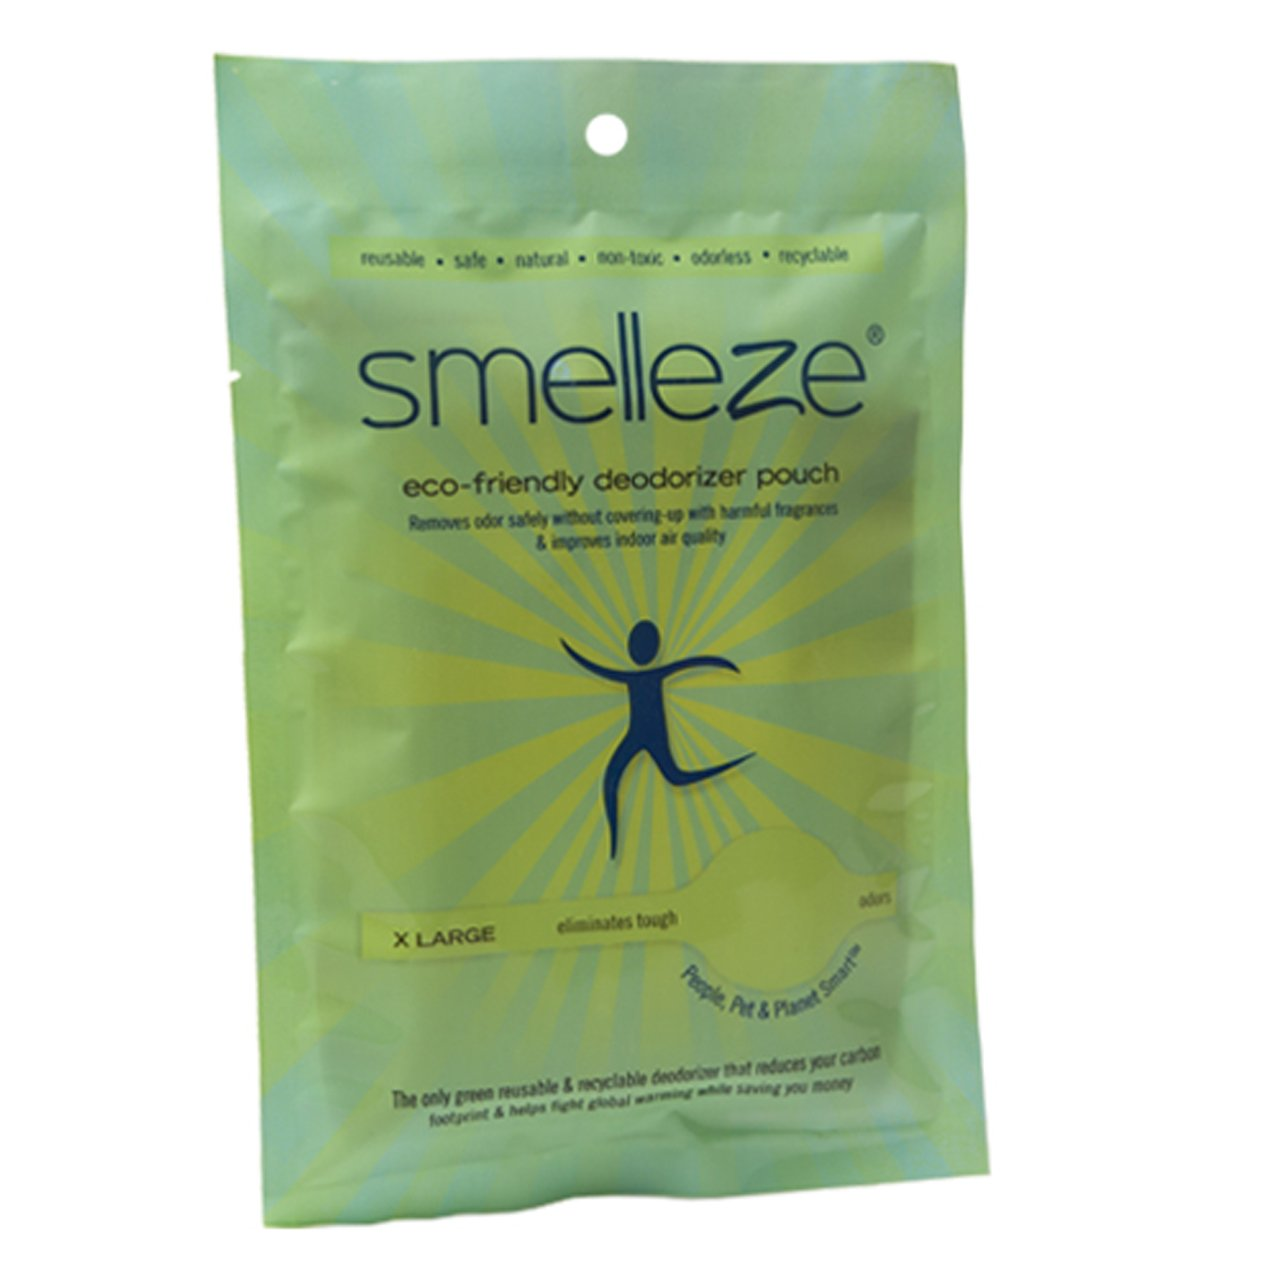 SMELLEZE Reusable Nail Salon Smell Removal Deodorizer Pouch: Kills Odor  Without Chemicals in 300 Sq  Ft